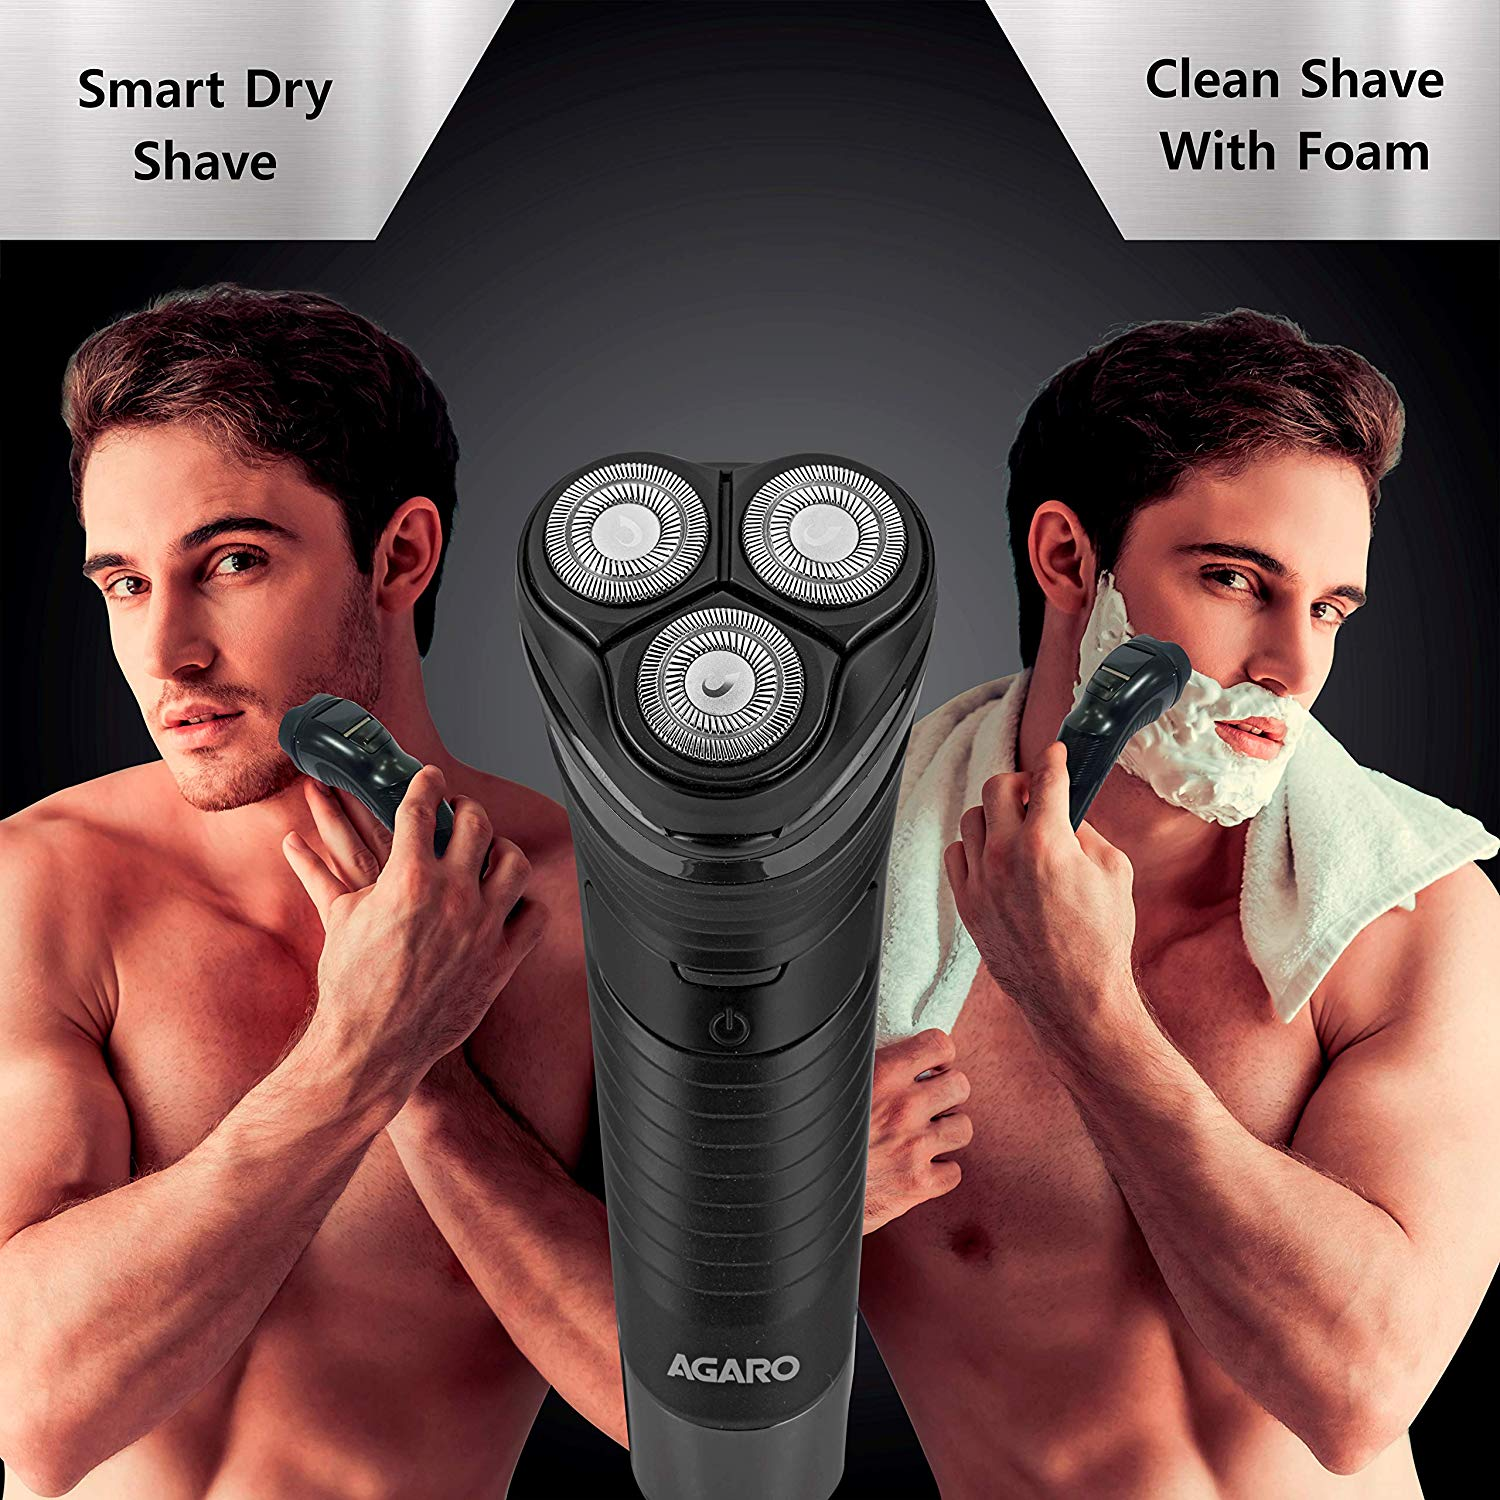 AGARO WD 751 Wet & Dry Electric Shaver with Pop-Up Trimmer, Rechargable